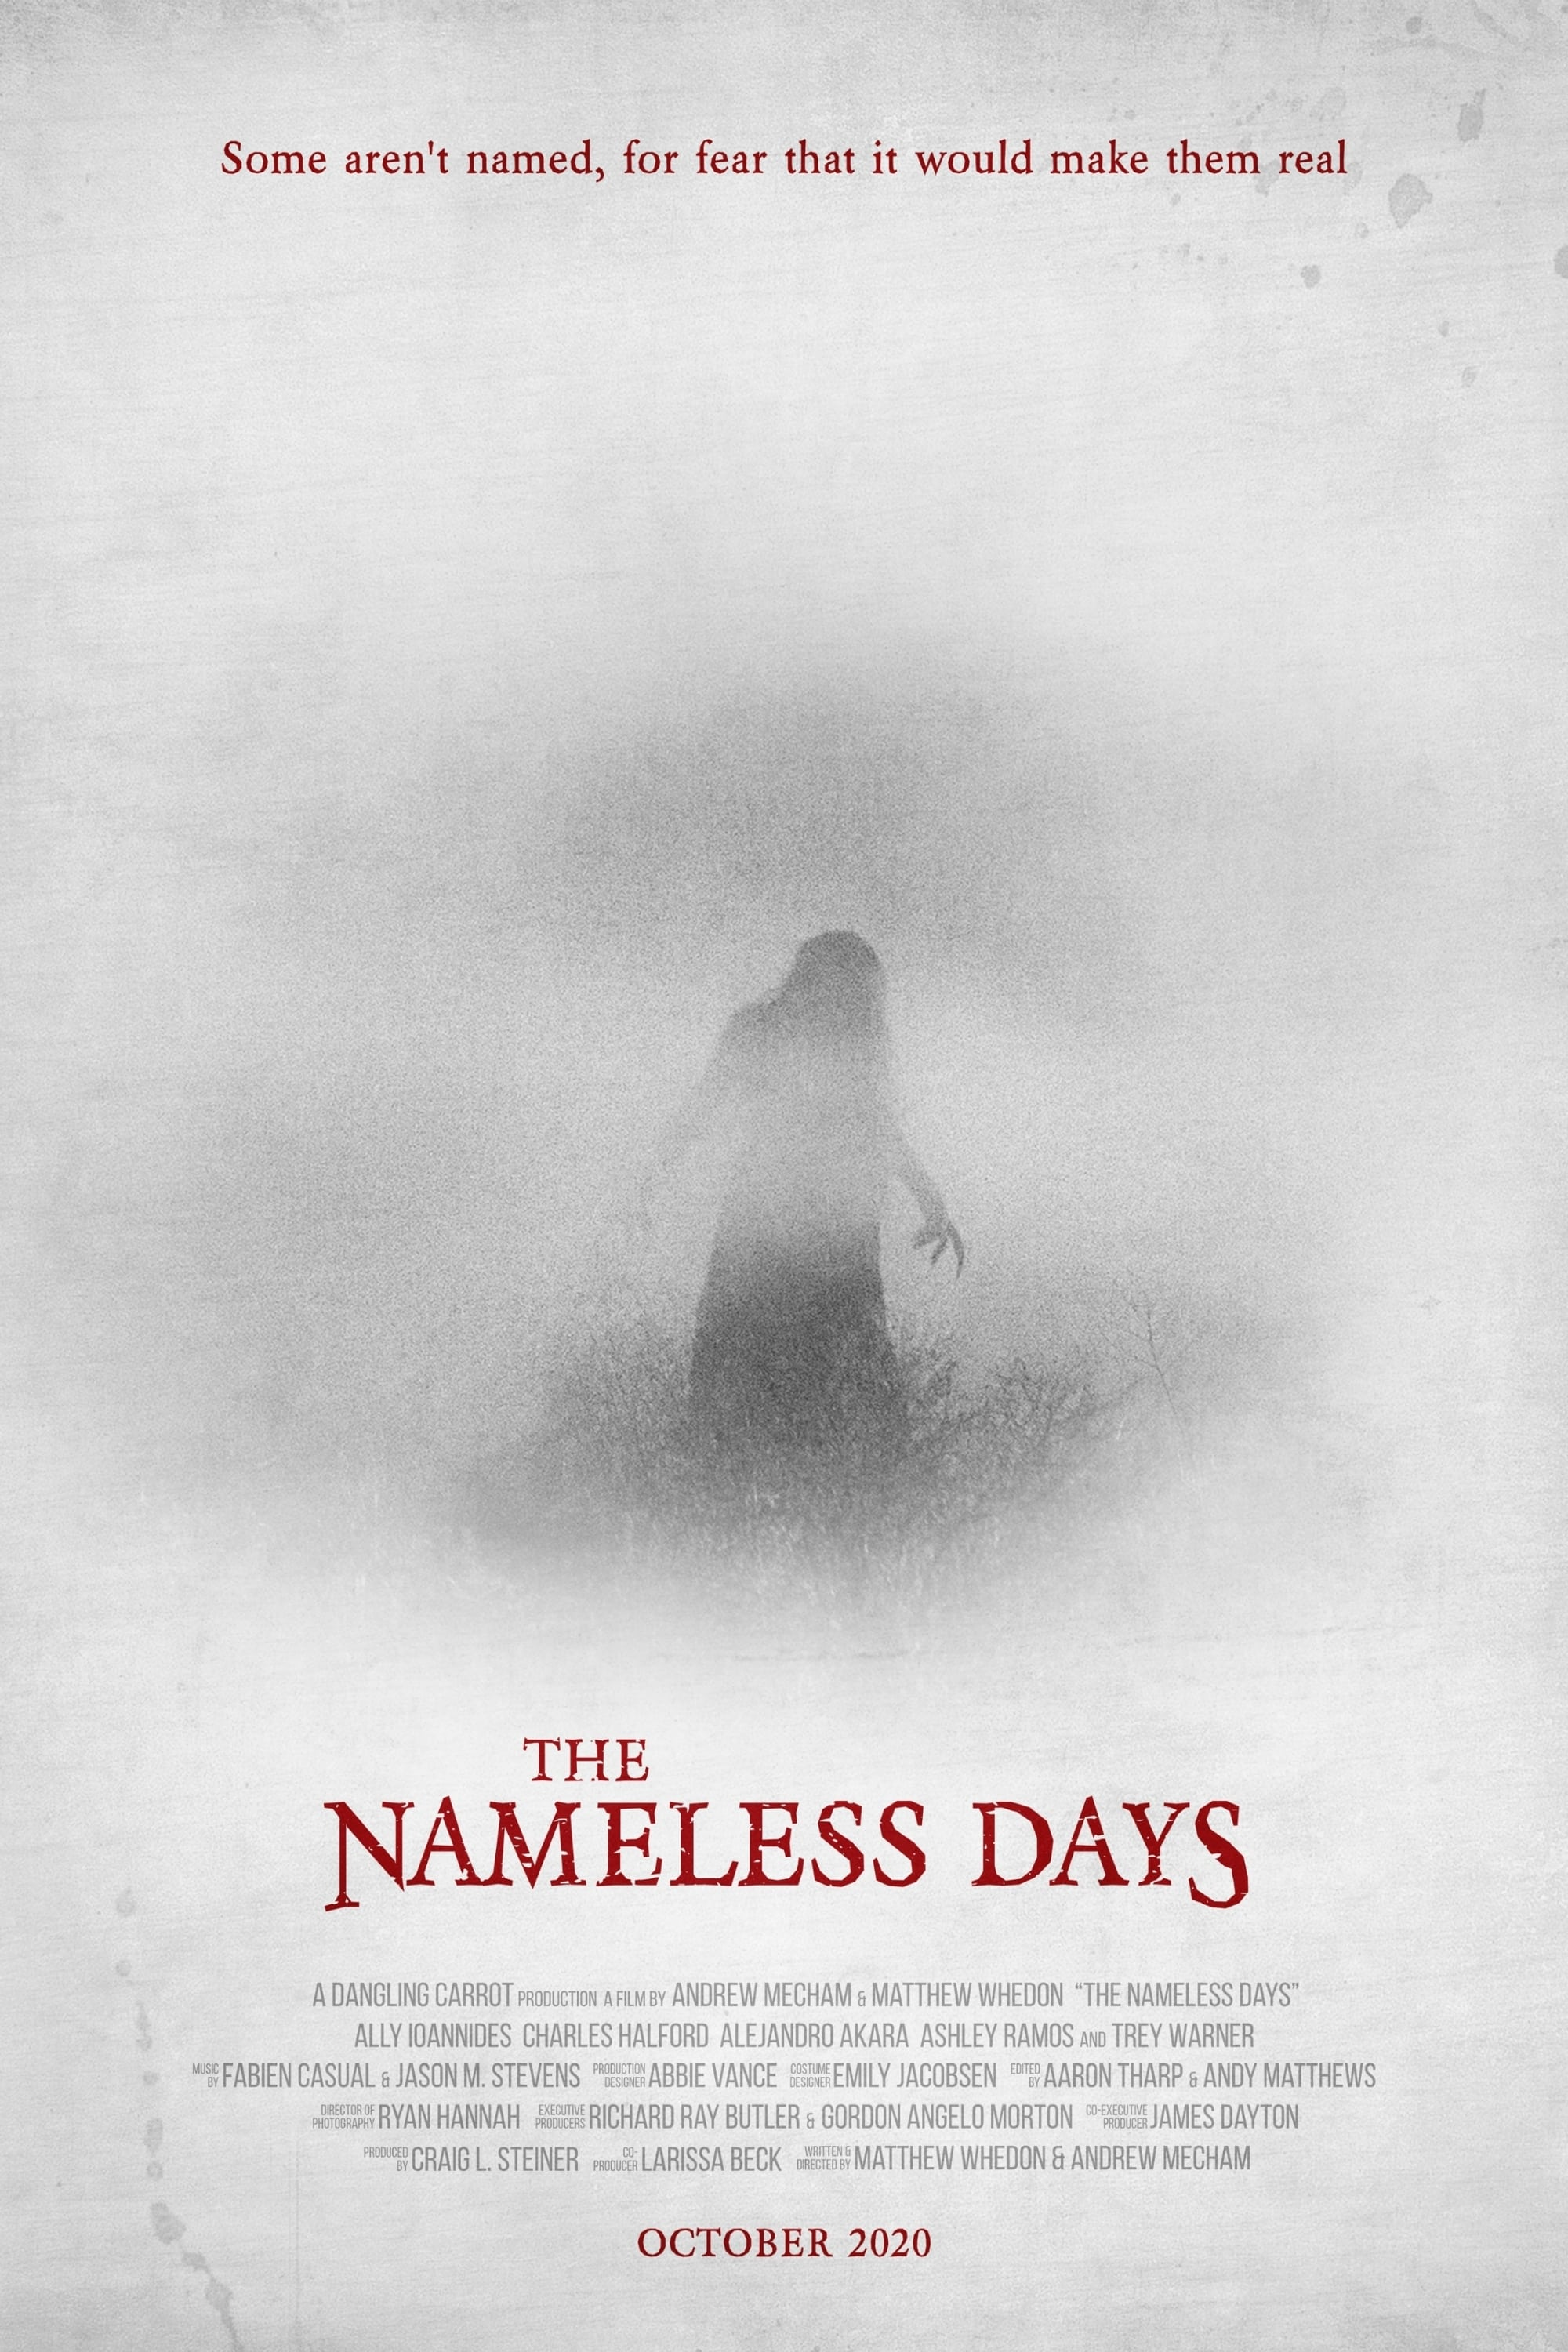 The Nameless Days